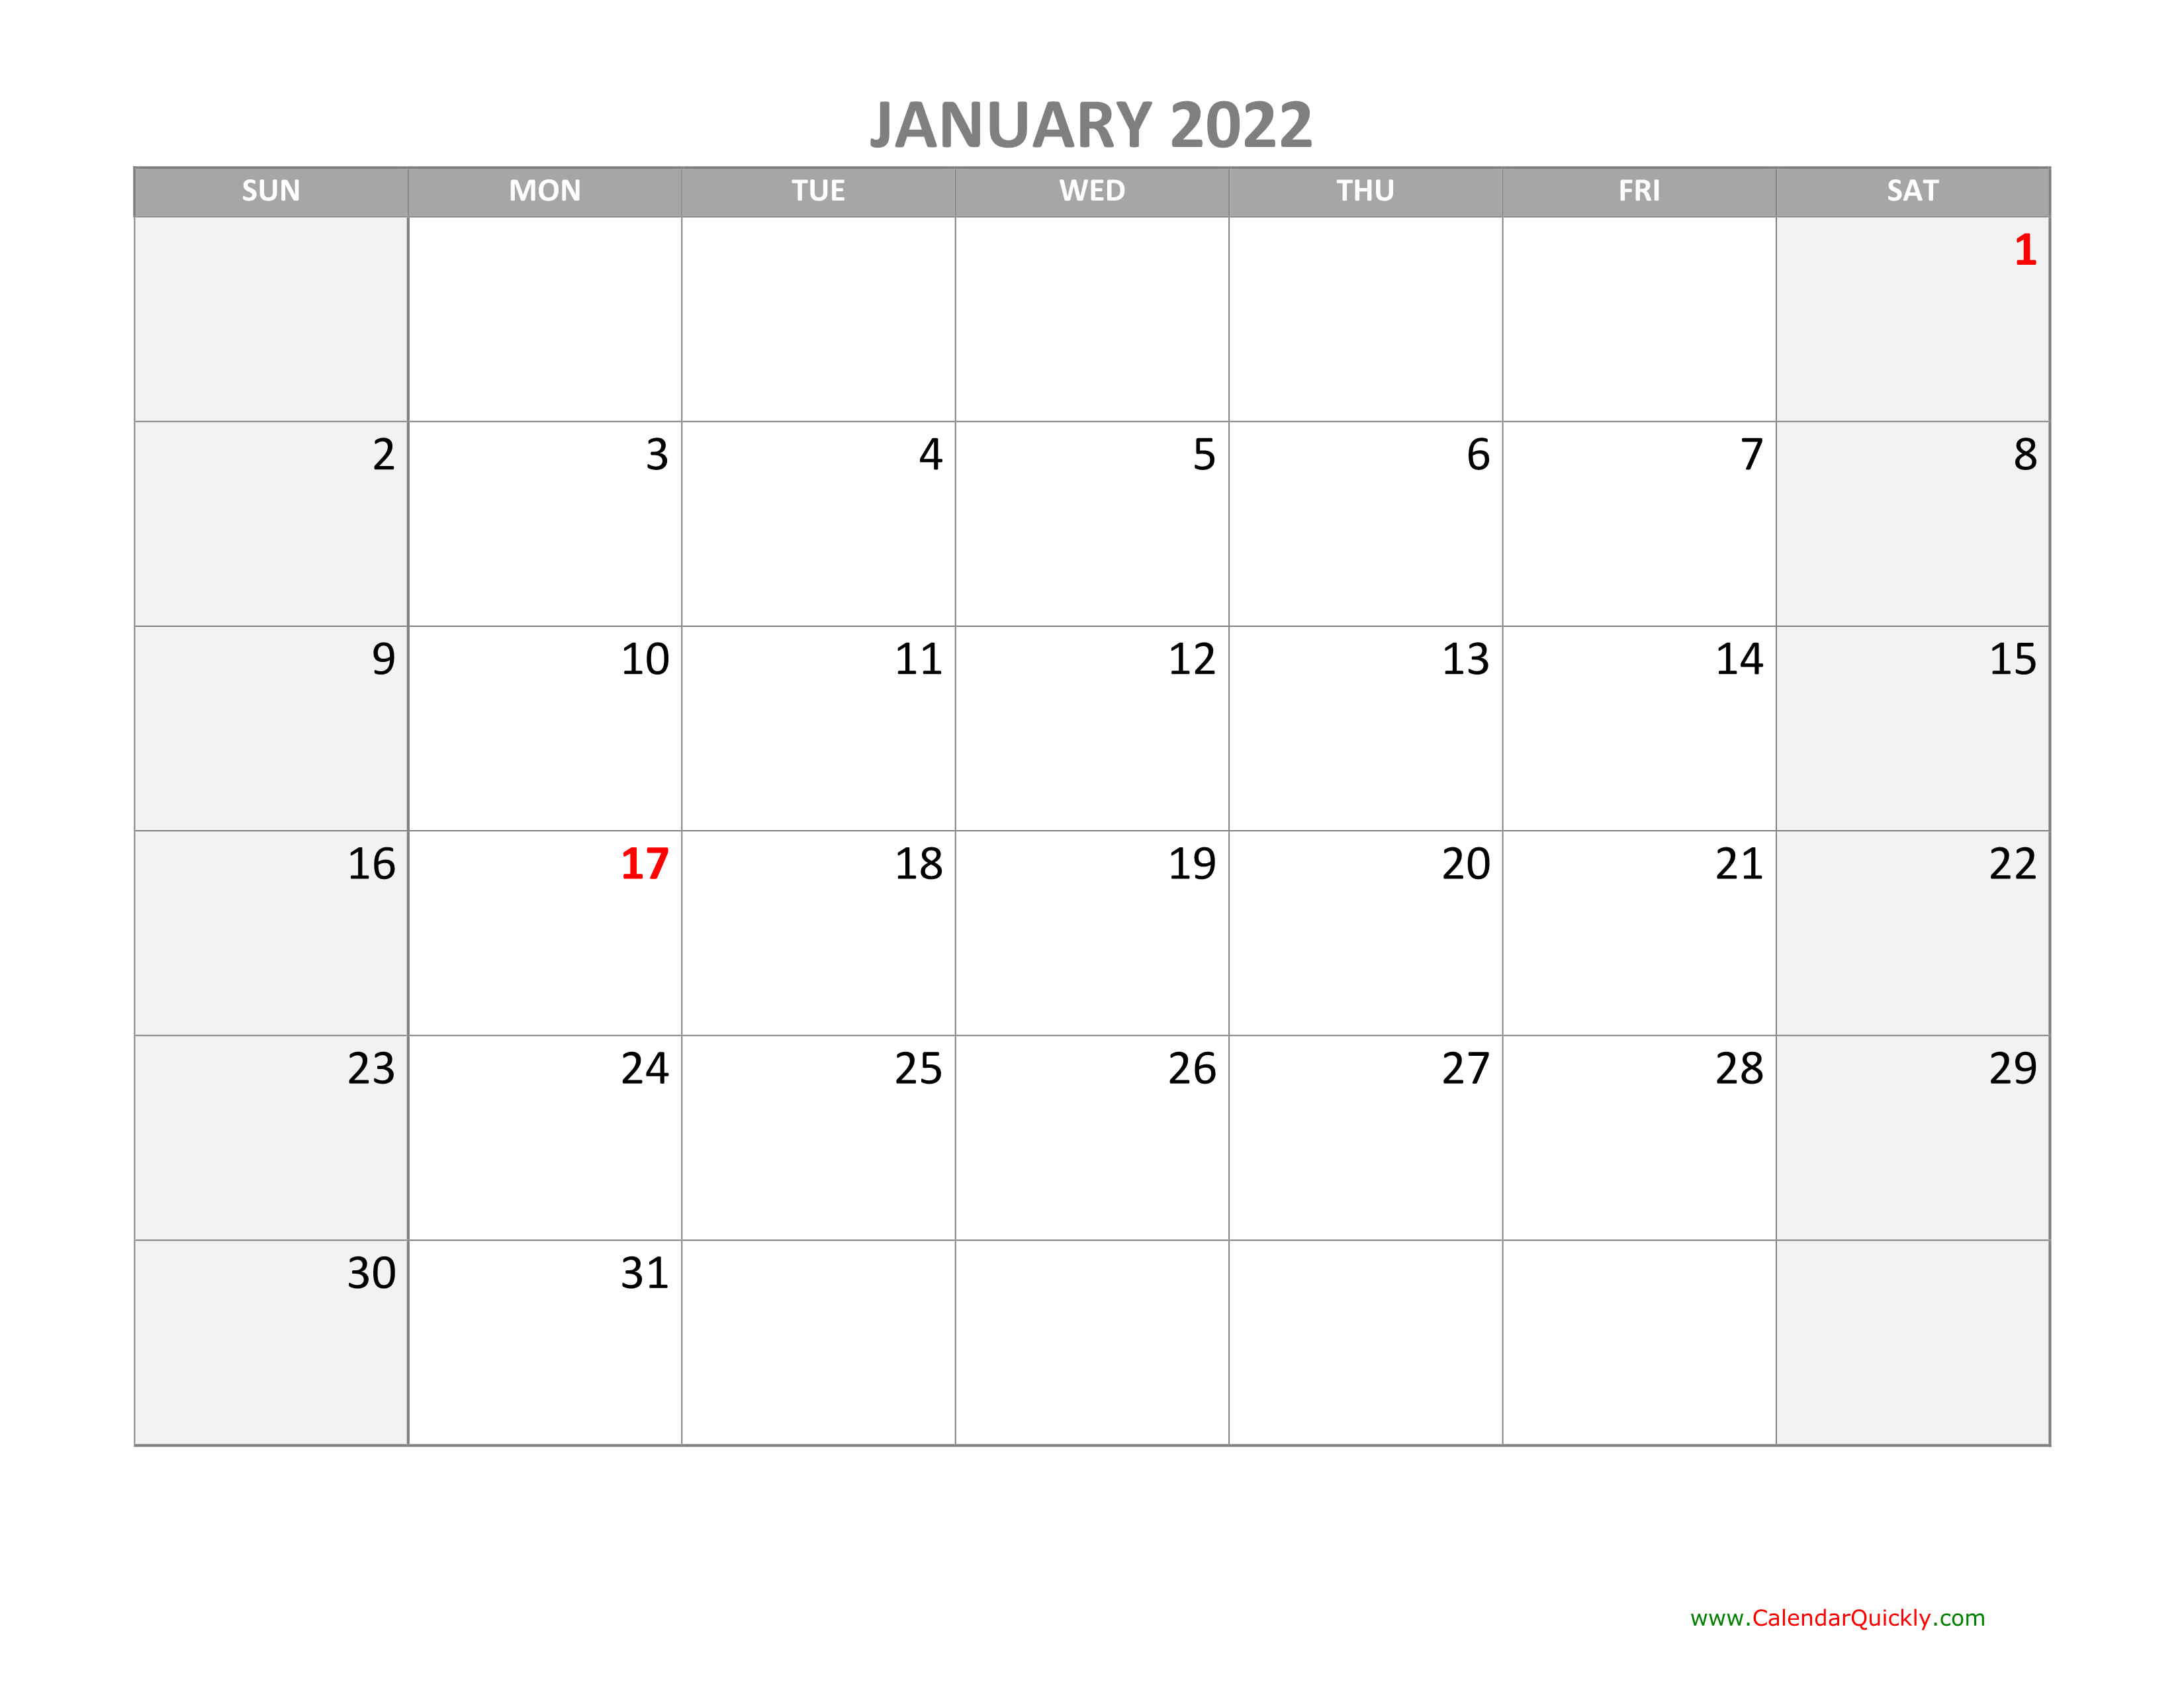 Monthly Calendar 2022 with Holidays | Calendar Quickly